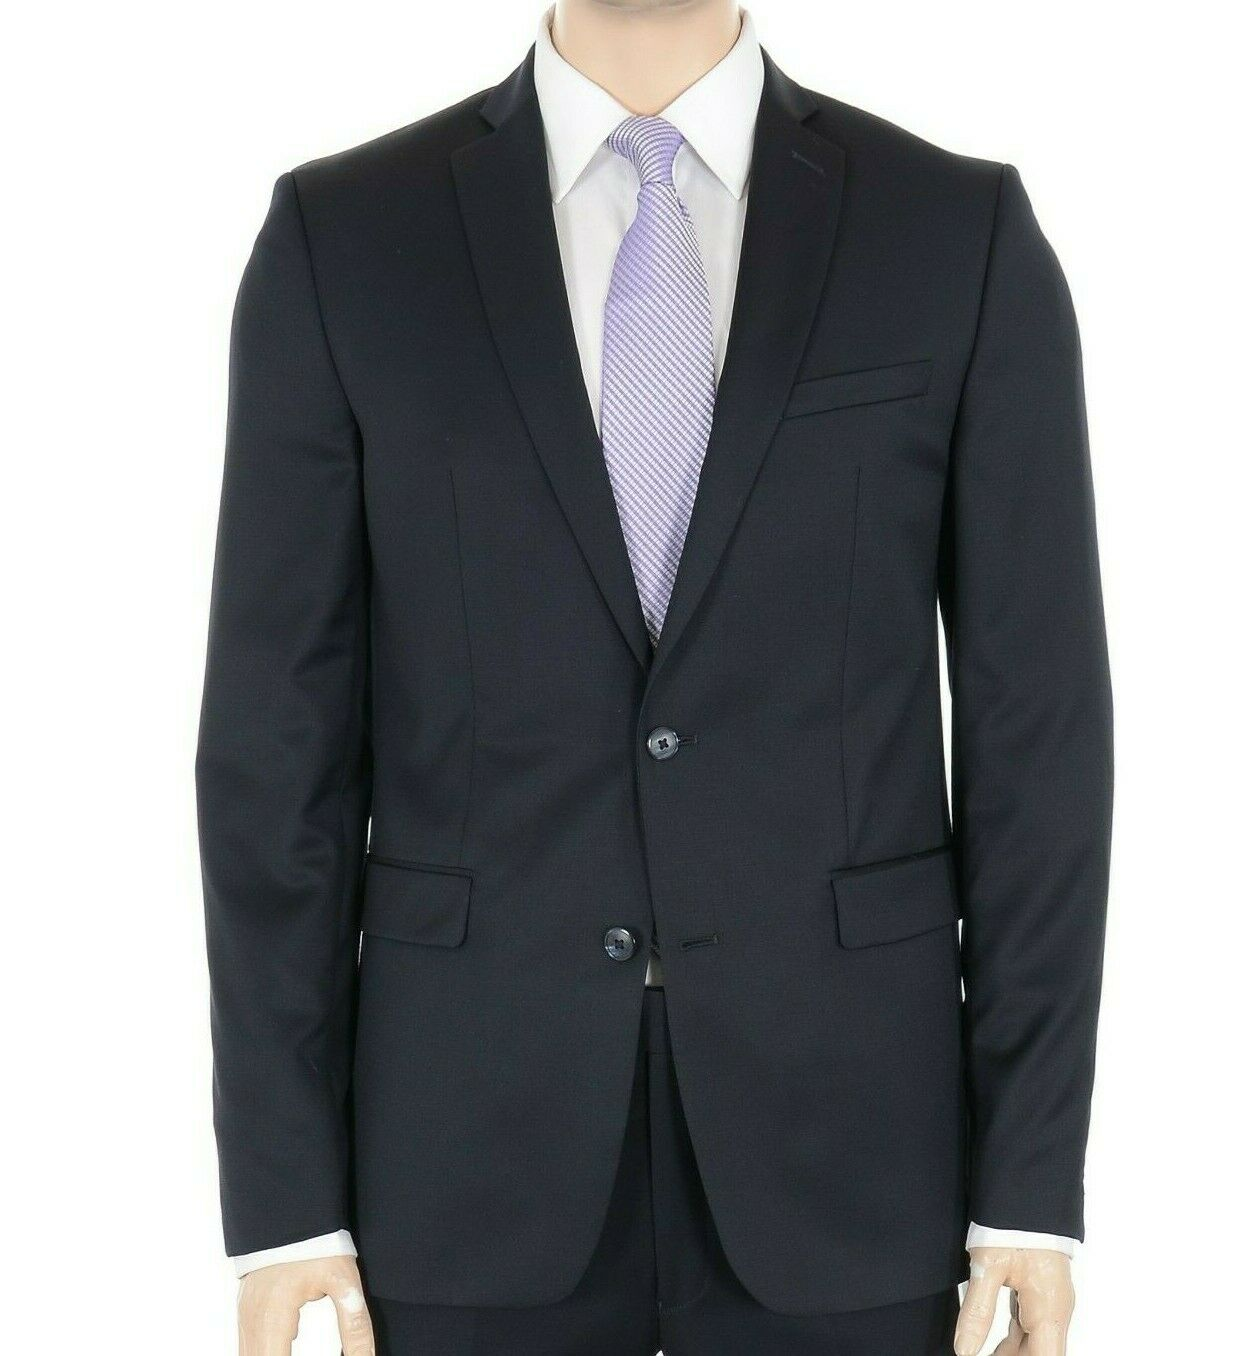 Bar III Extra Slim Fit Solid navy bluee Two Button 100% Wool Blazer Sportcoat